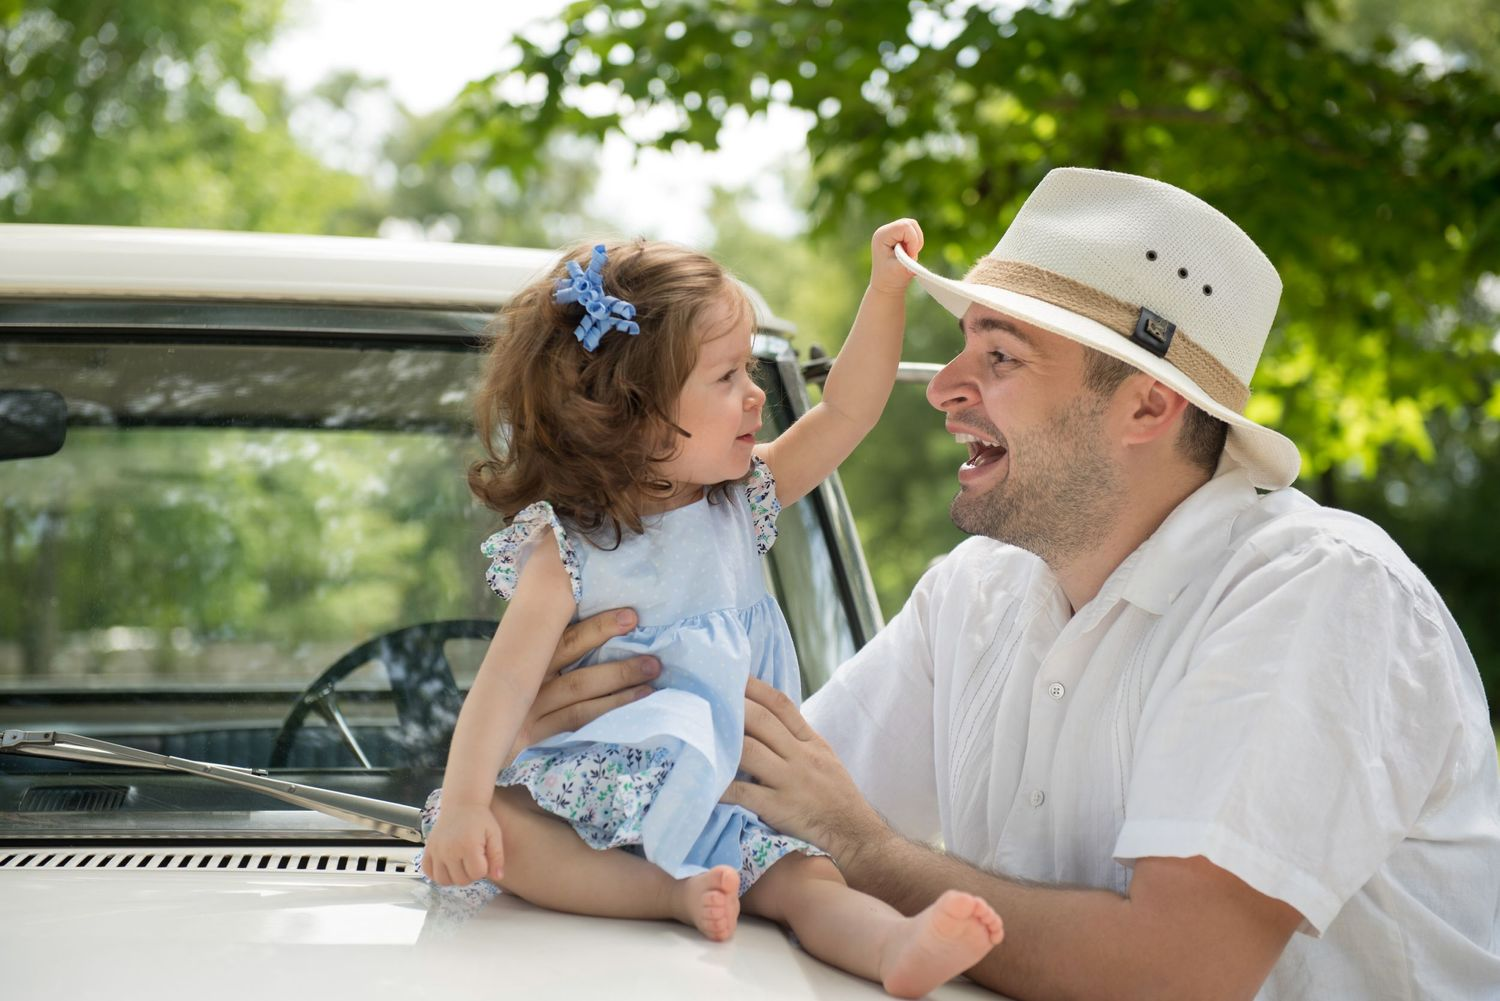 Father Daughter Photography Portrait with Vintage Truck and Hats